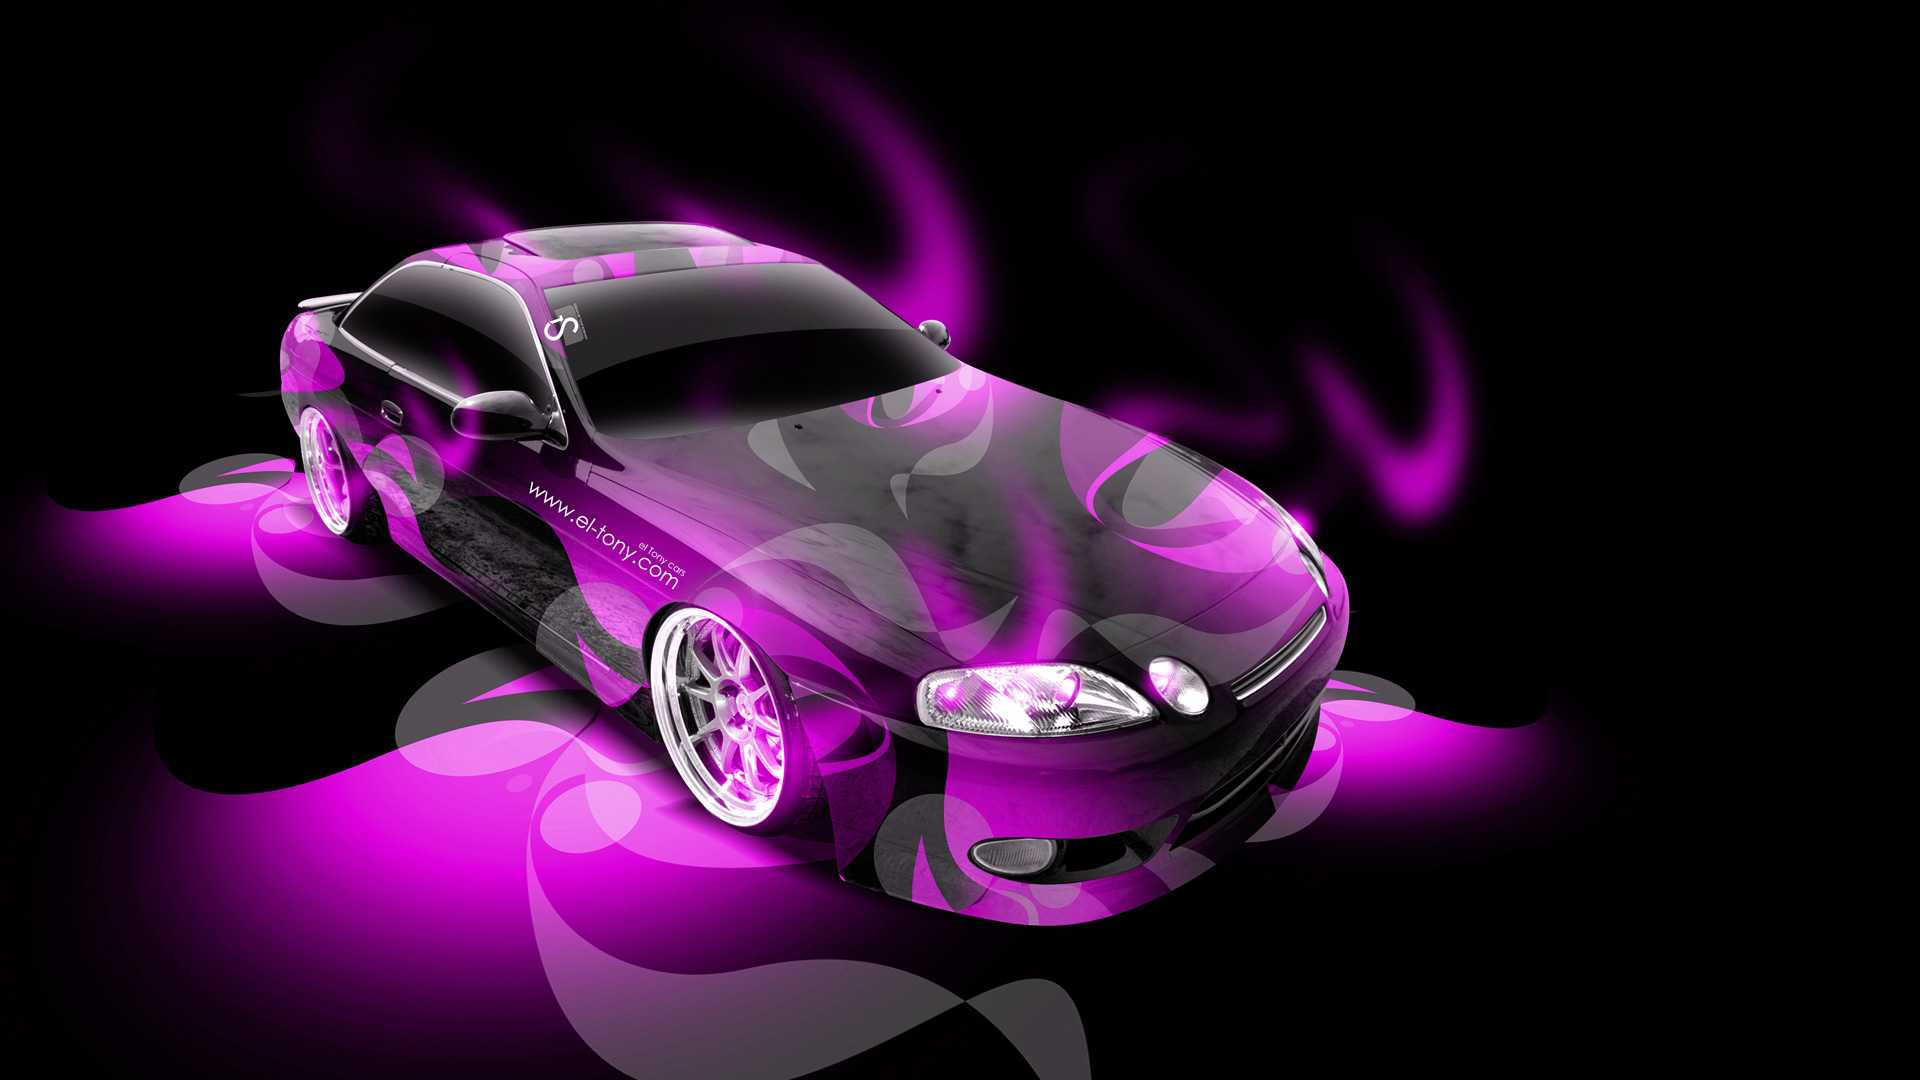 Toyota Soarer JDM Super Abstract Car 2014 | El Tony